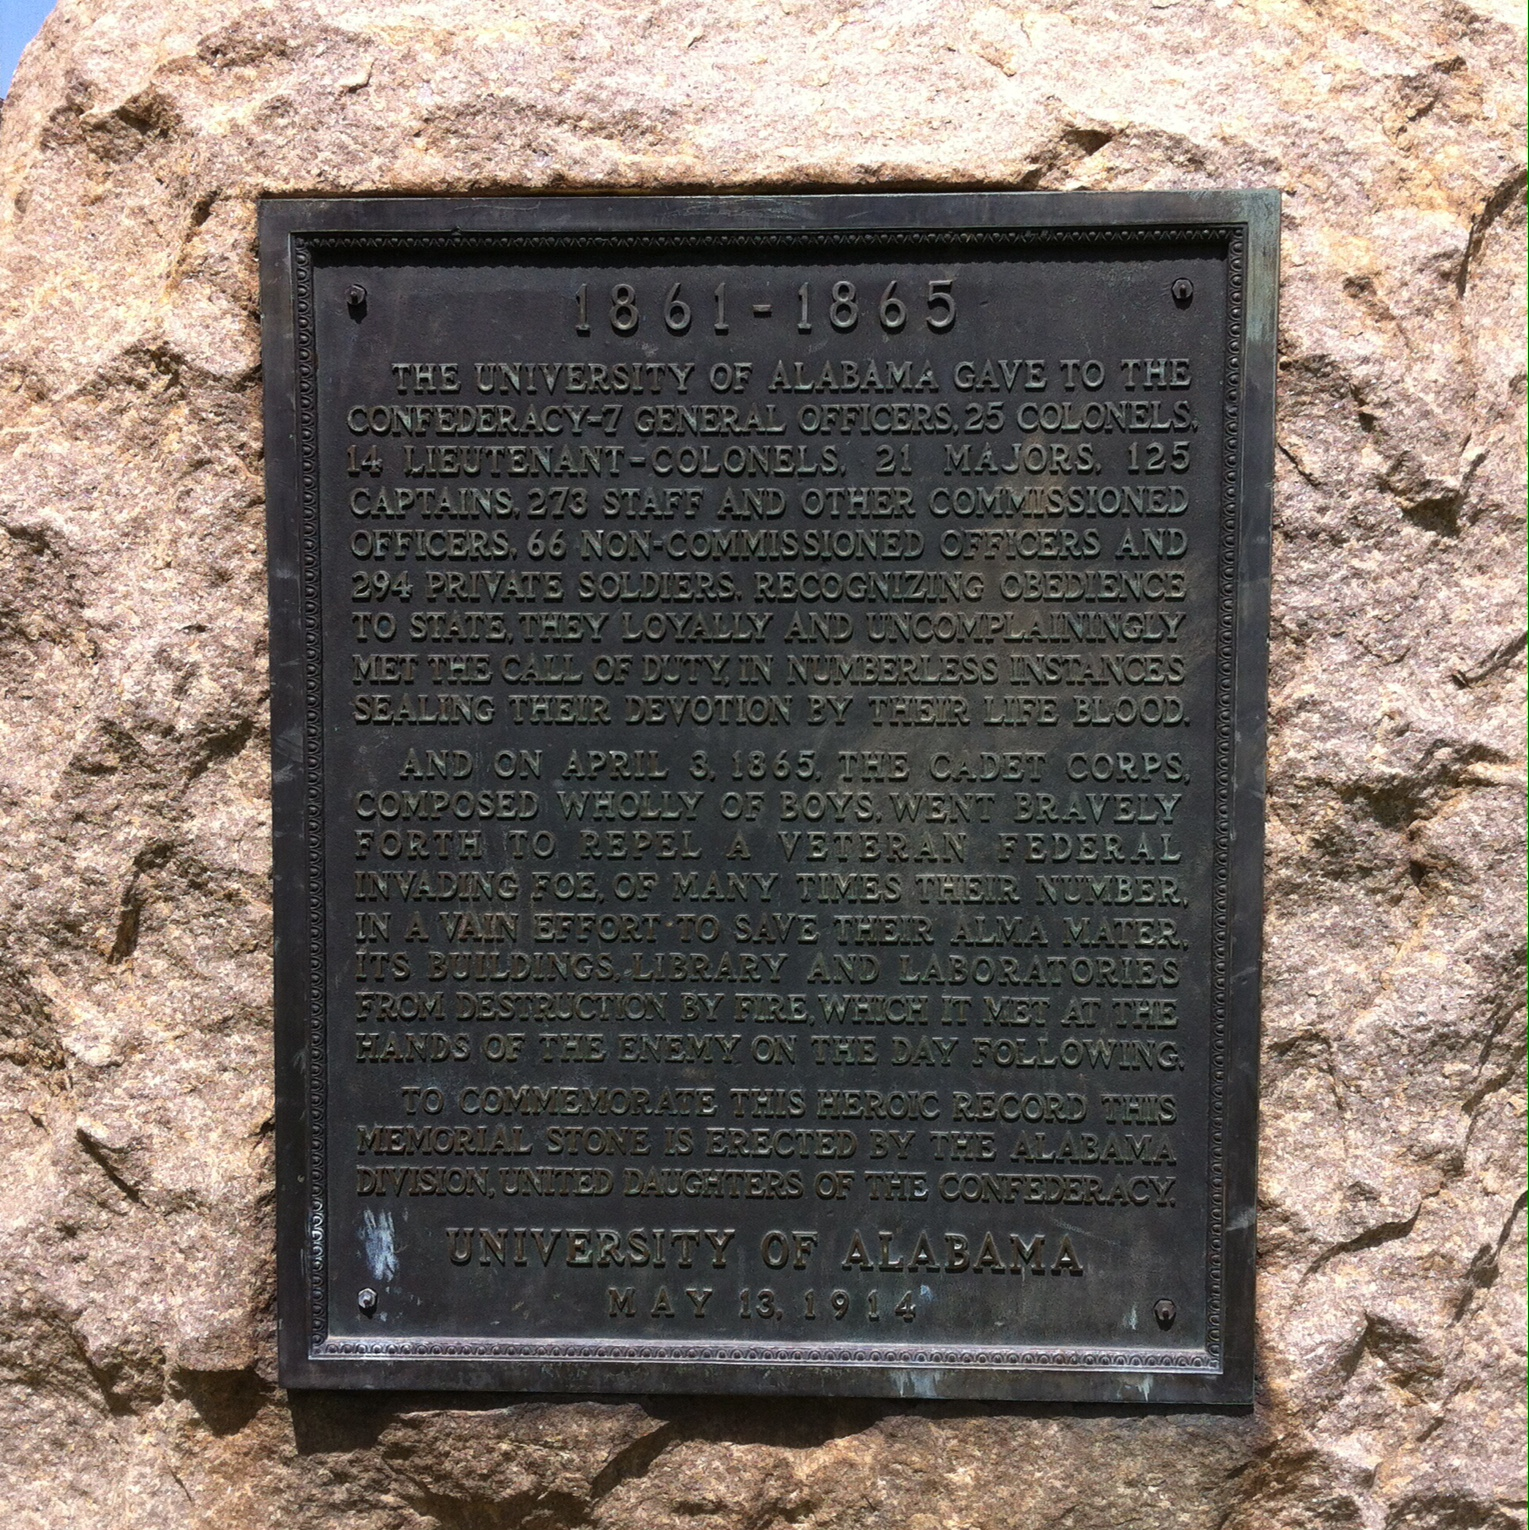 Here is a close of up the bronze plaque which is in the middle of the monument. It comforts those who fought for the confederacy and studied at UA.